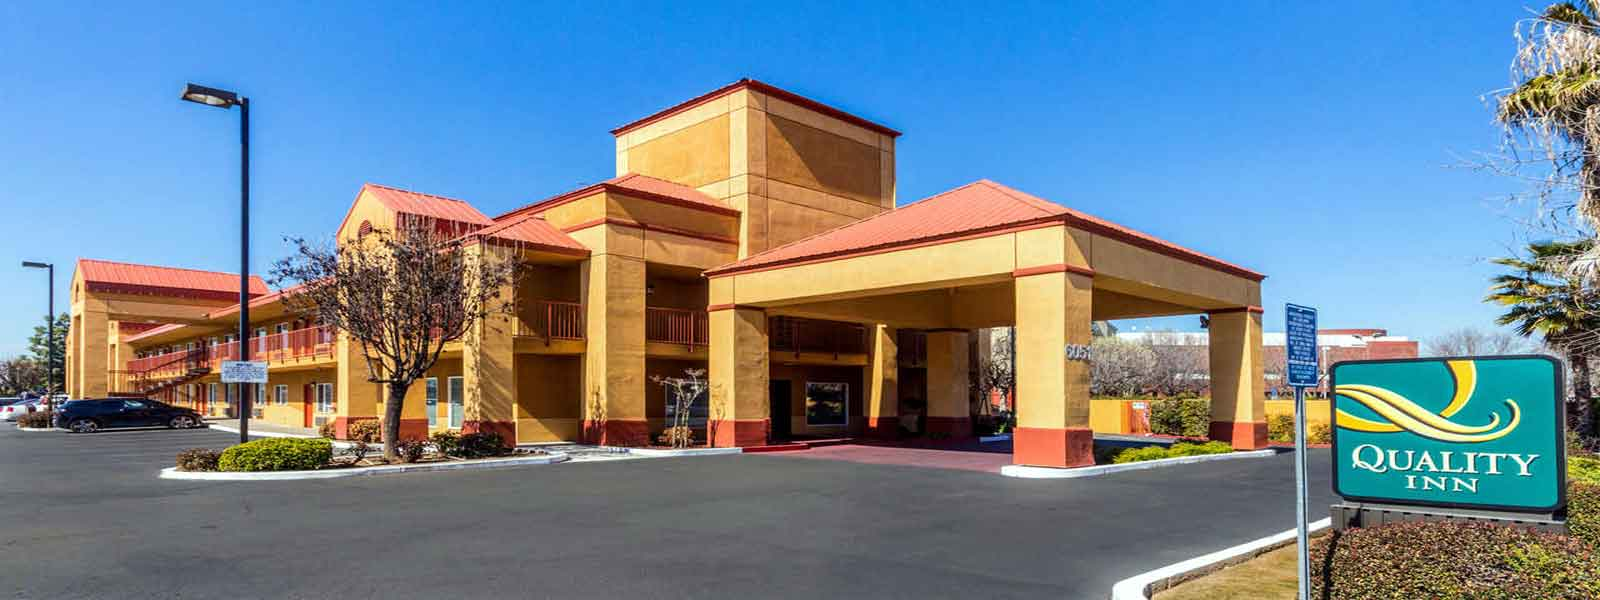 Clean Comfortable Rooms Lodging Hotels Motels in Fresno California